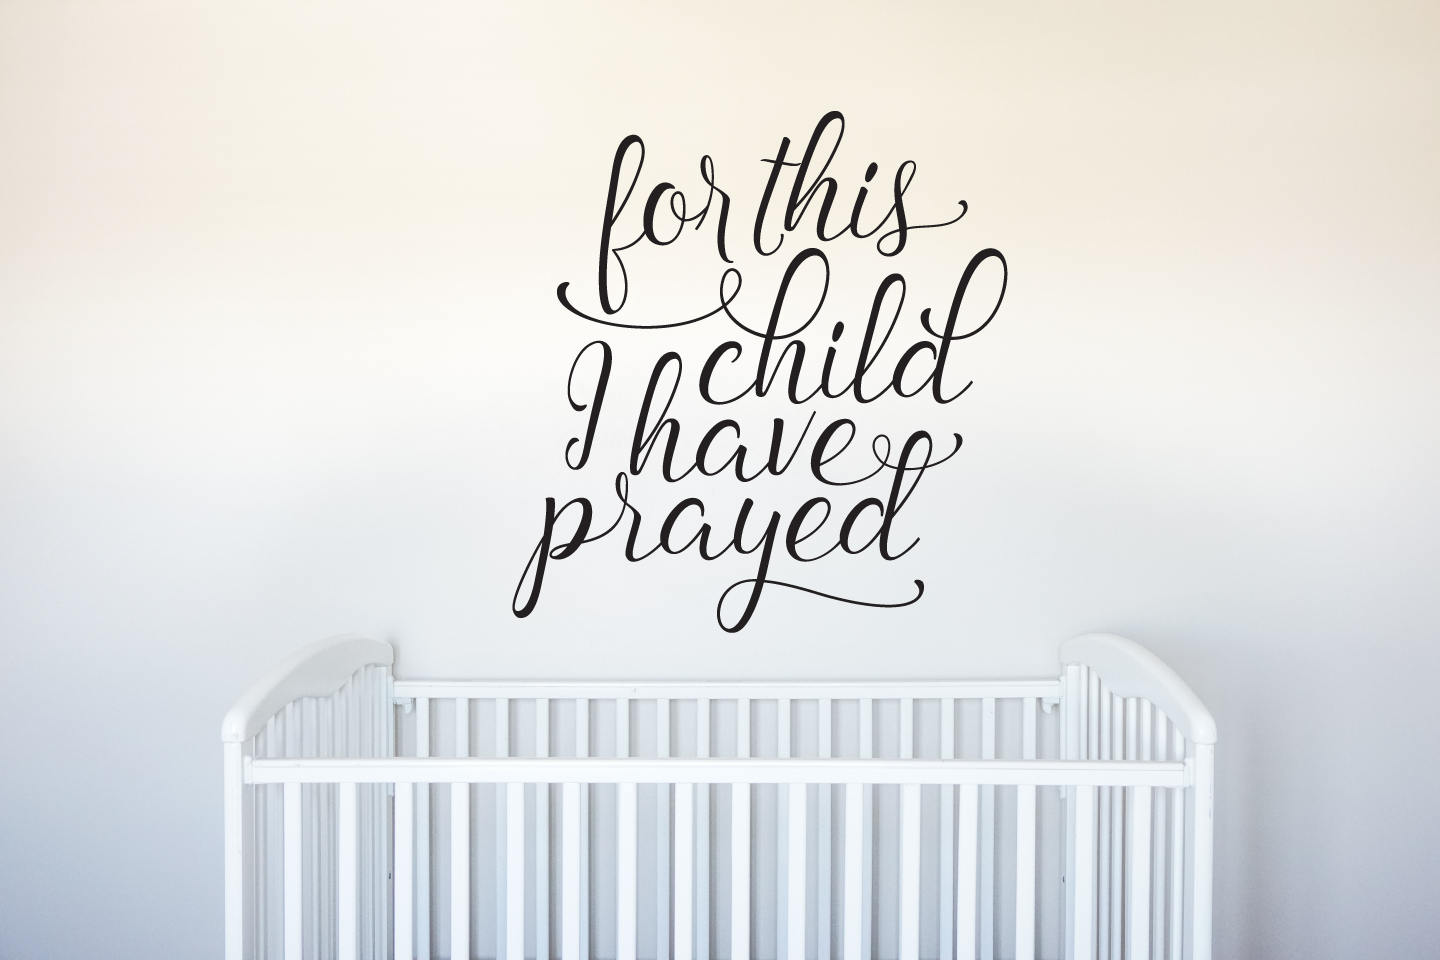 For This Child I Have Prayed - Vinyl Decal Wall Art Decor